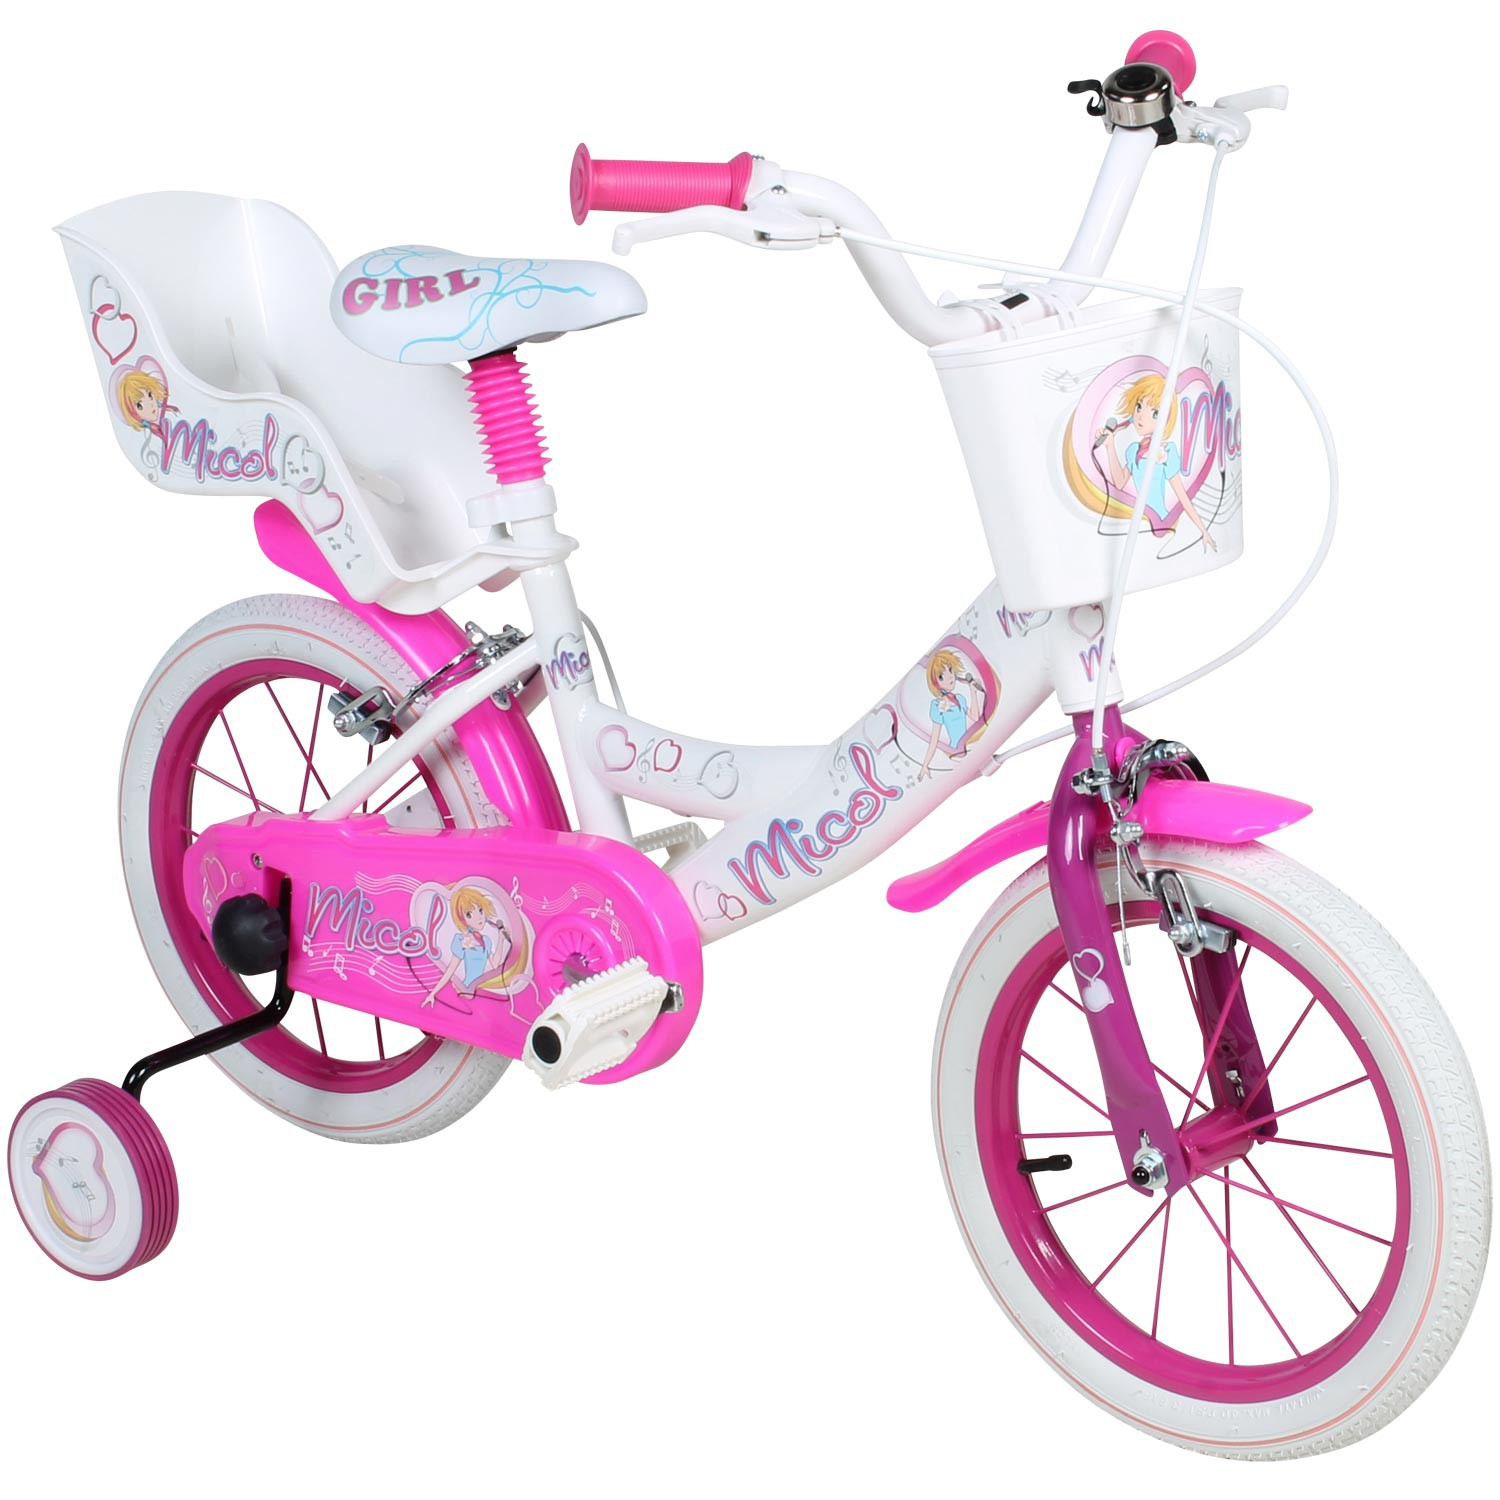 14 zoll micol kinderfahrrad fahrrad kleinkind kids bike. Black Bedroom Furniture Sets. Home Design Ideas